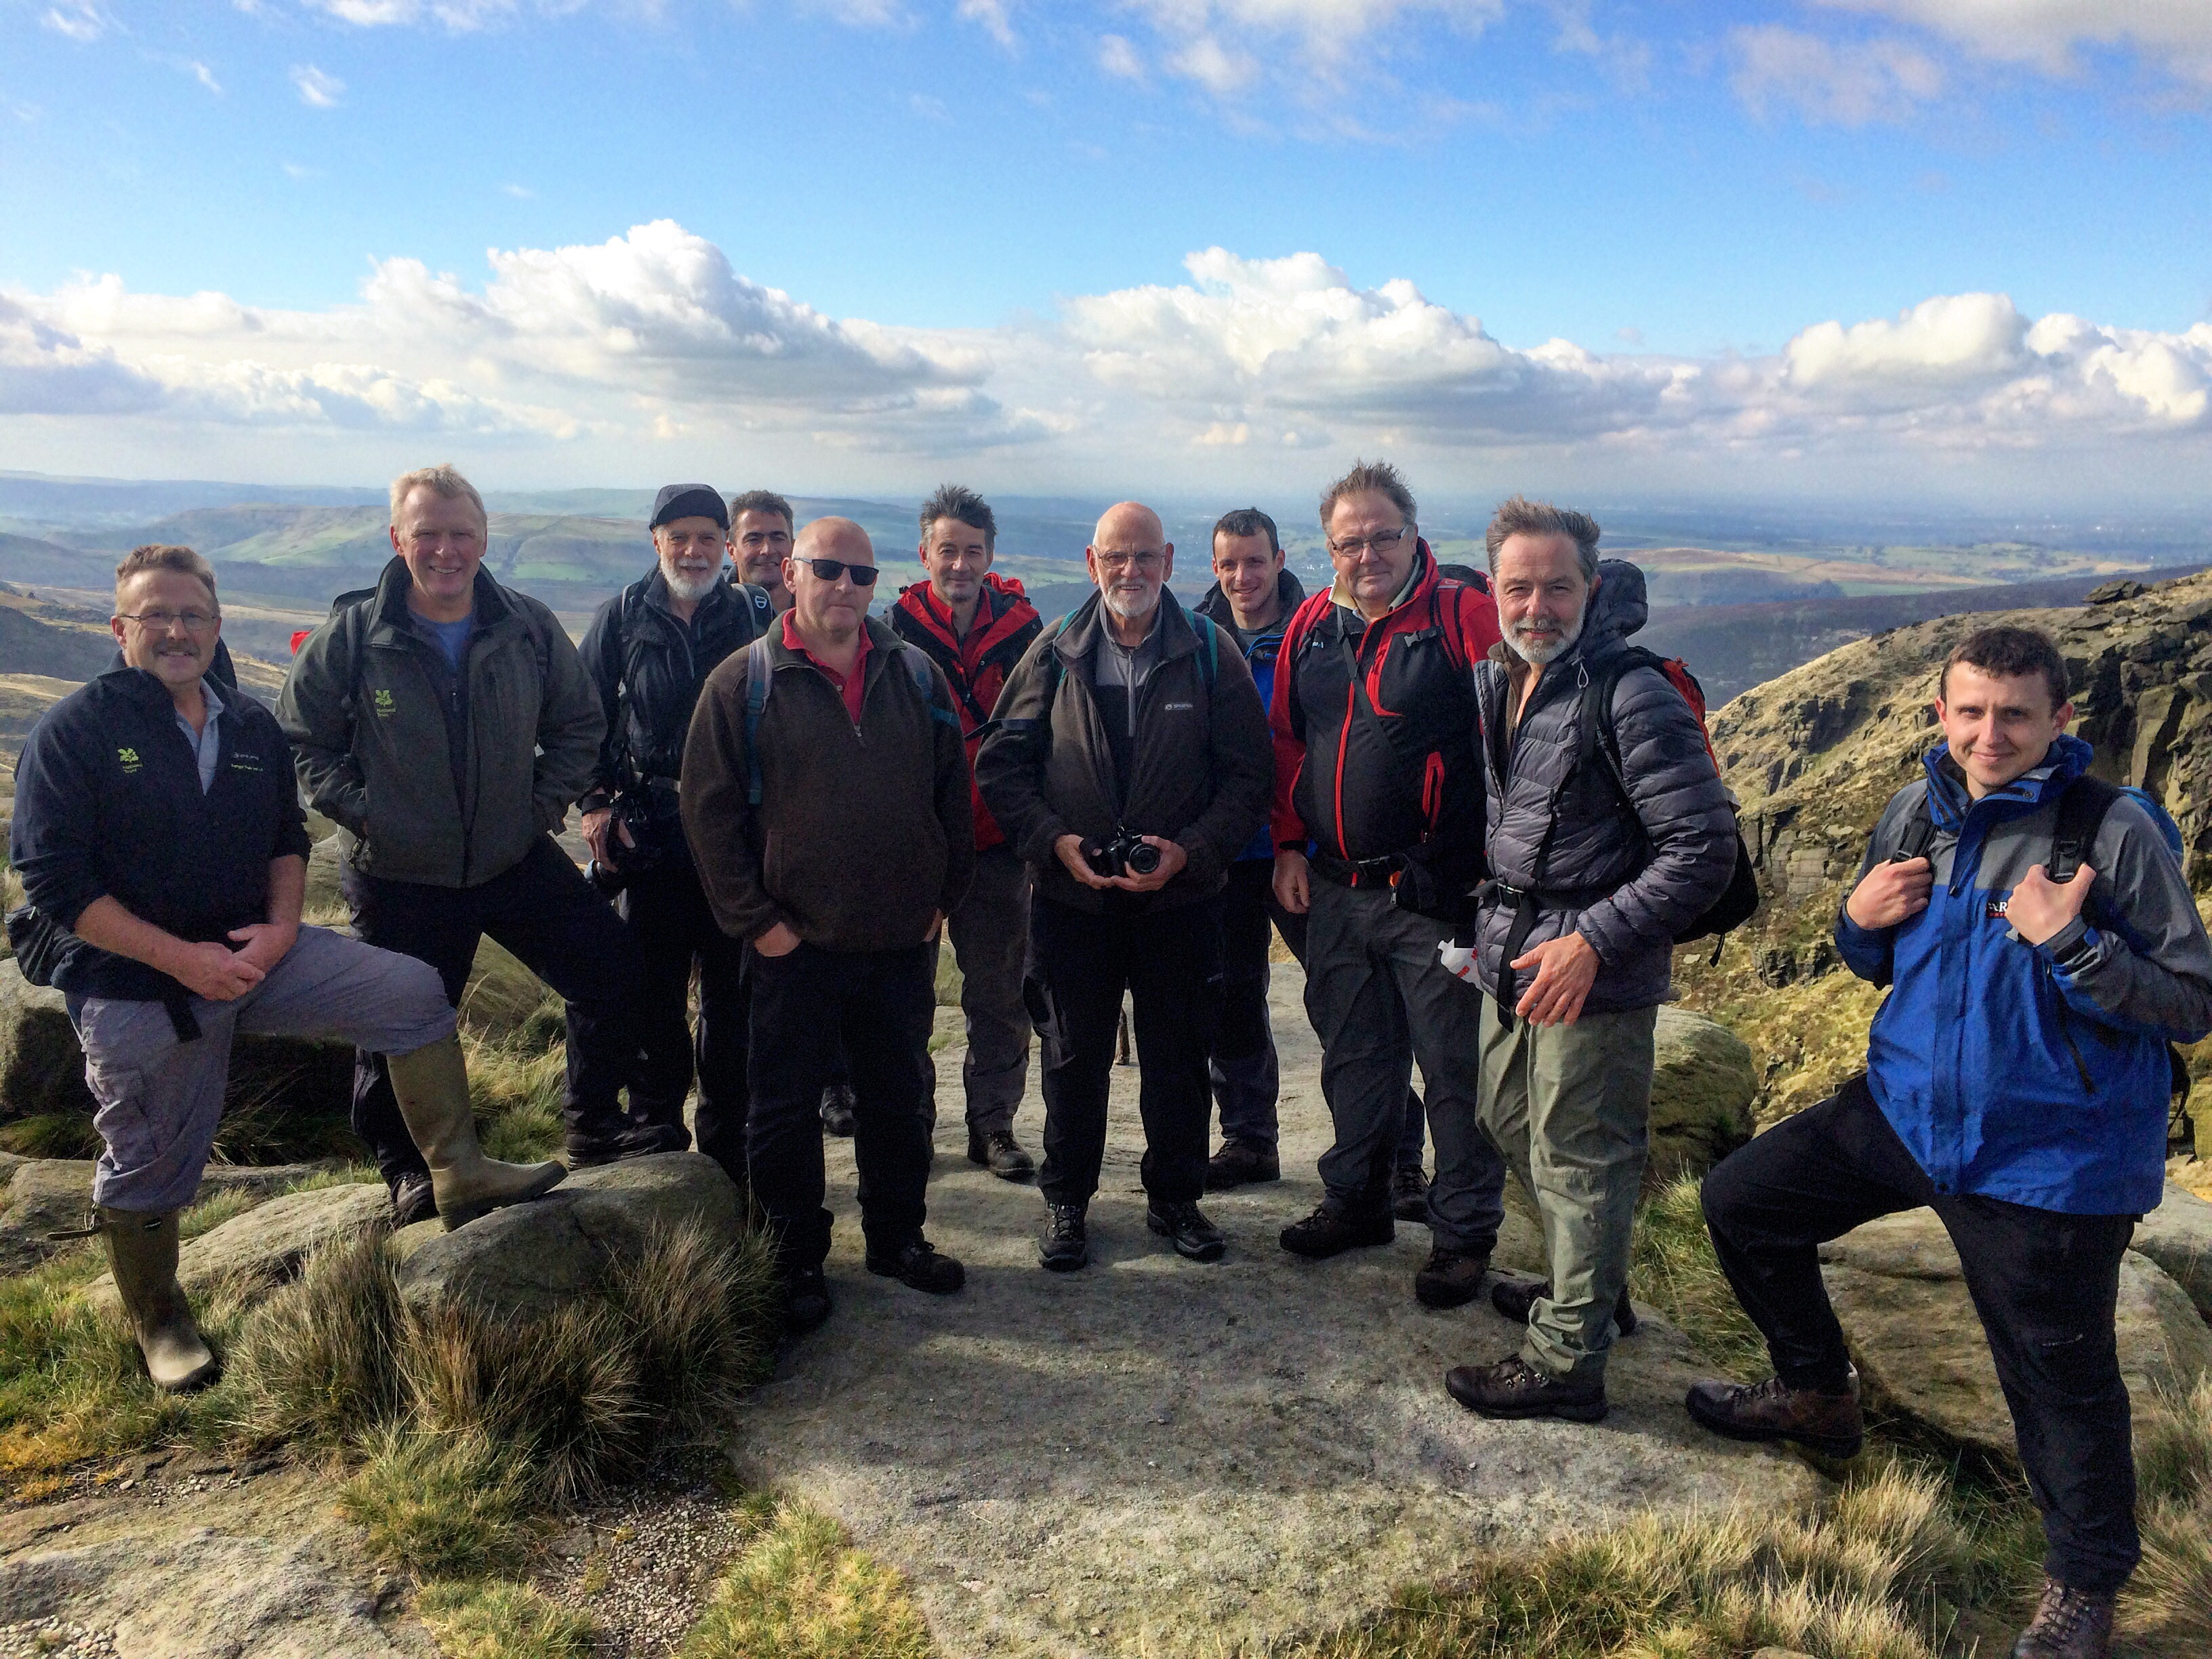 National Trust Kinder Scout Wardens over the year - Credit Tom Harman